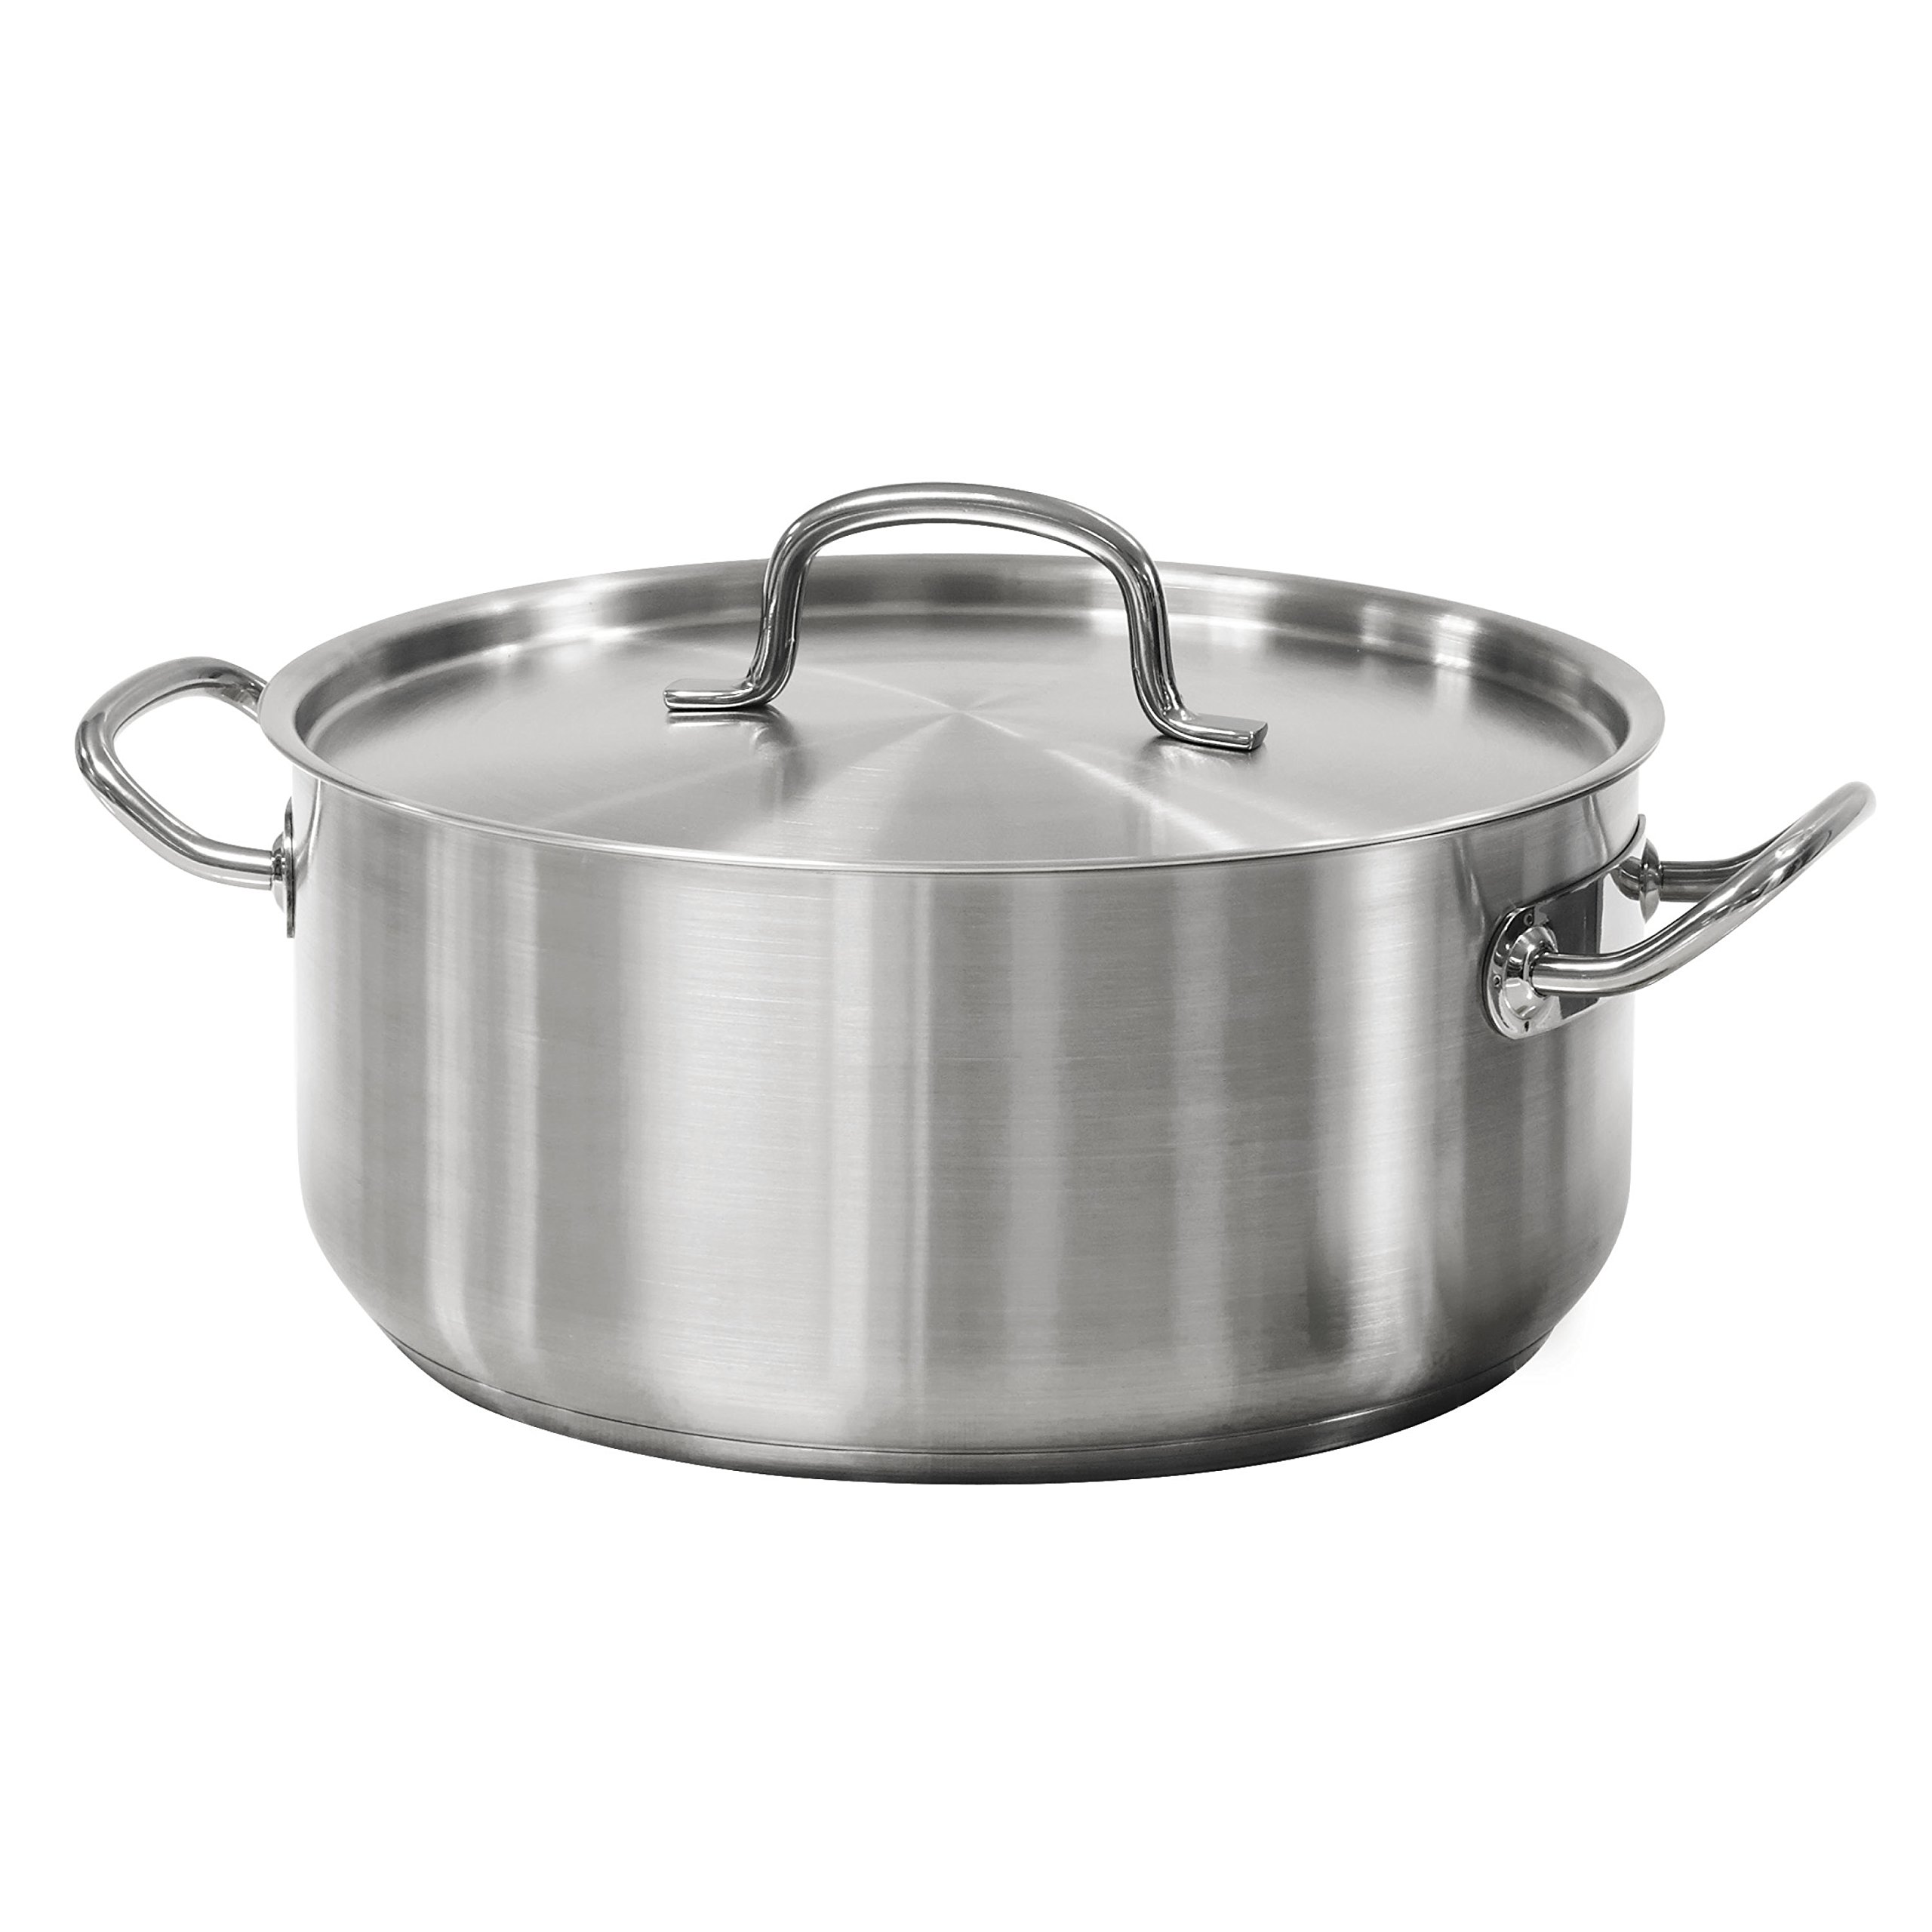 Tramontina 80117/576DS Pro-Line Stainless Steel Covered Dutch Oven, 9 quart, NSF-Certified by Tramontina